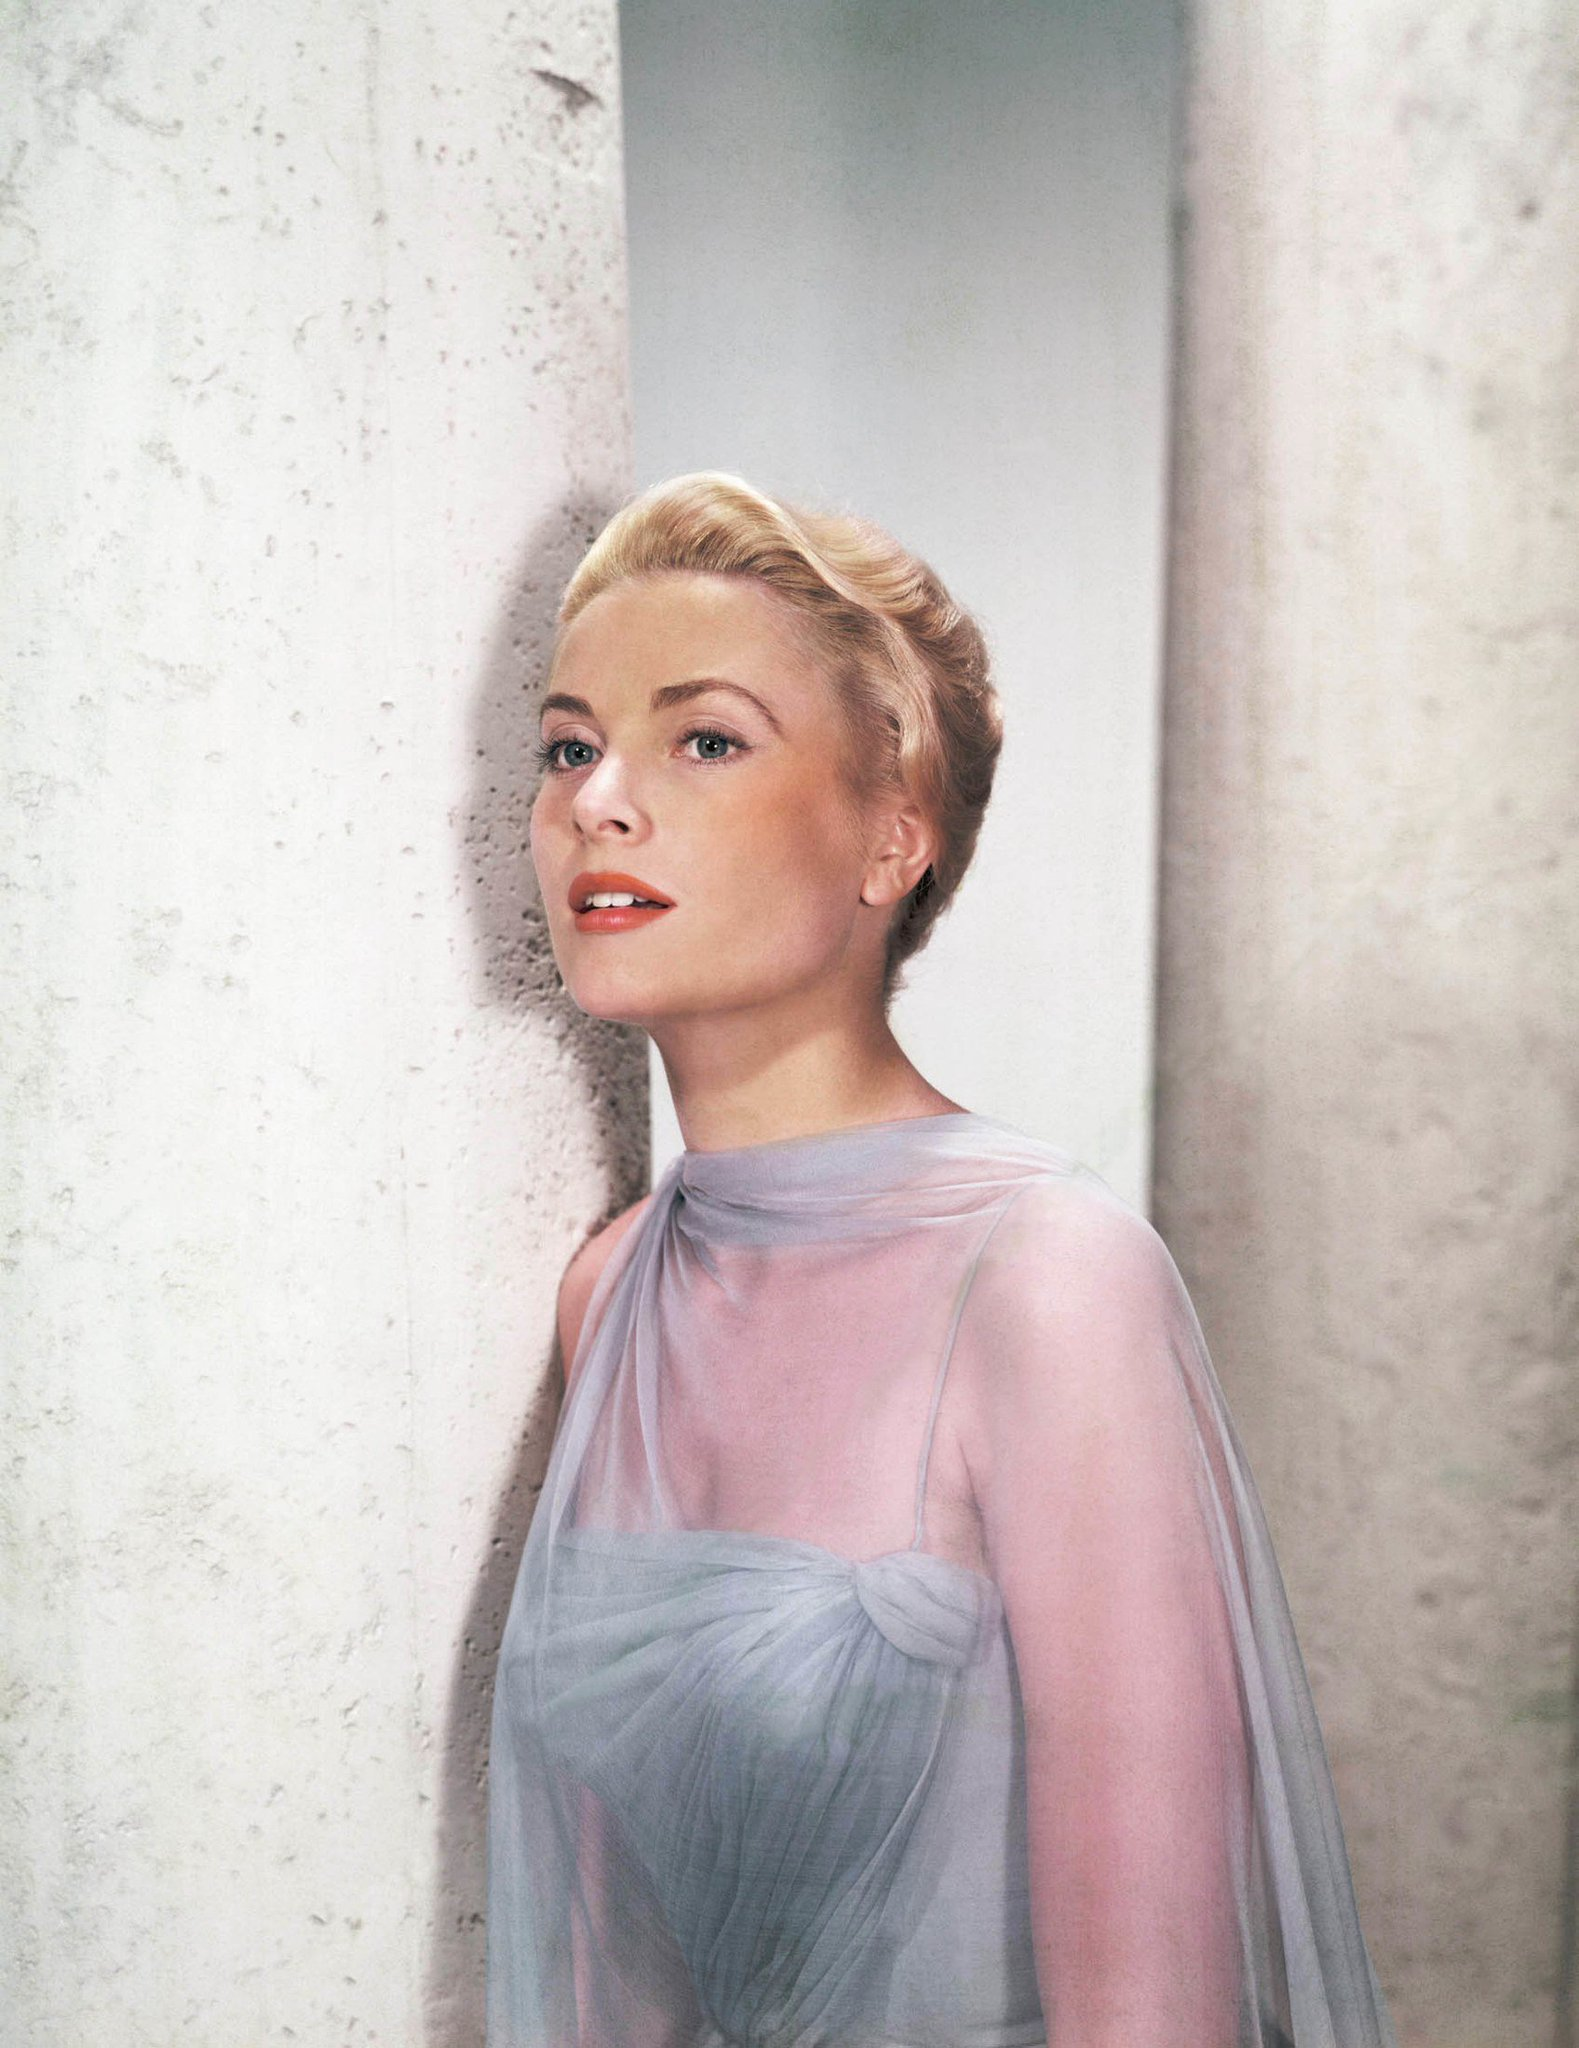 See stunning vintage photos of Grace Kelly, on-set and off: https://t.co/5R75qV9ygJ https://t.co/2v9EqvEmr0